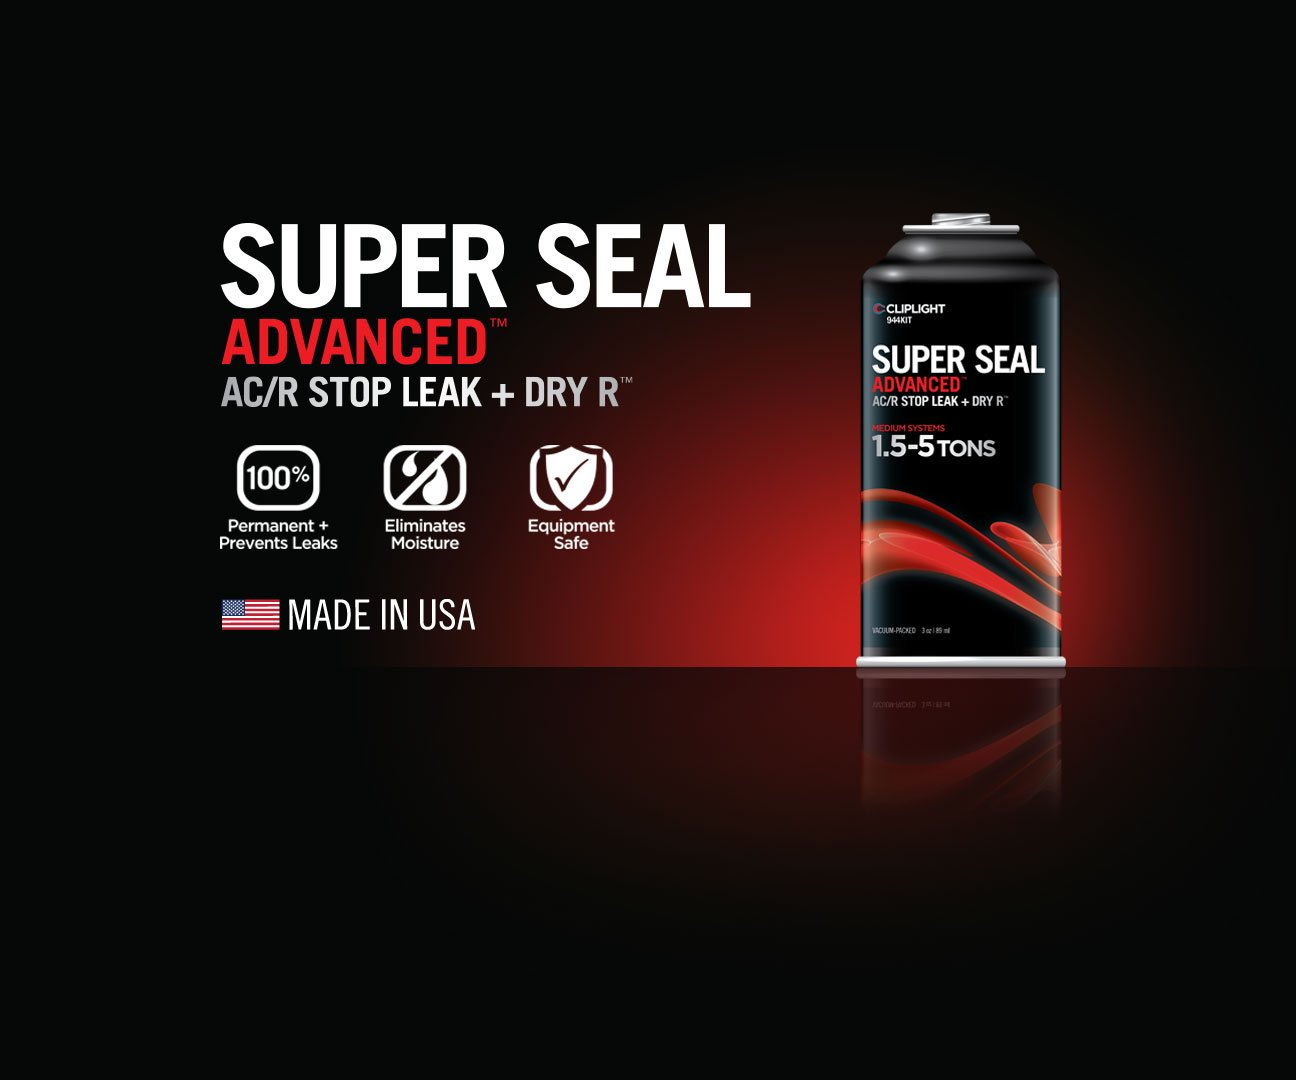 Super Seal Advanced